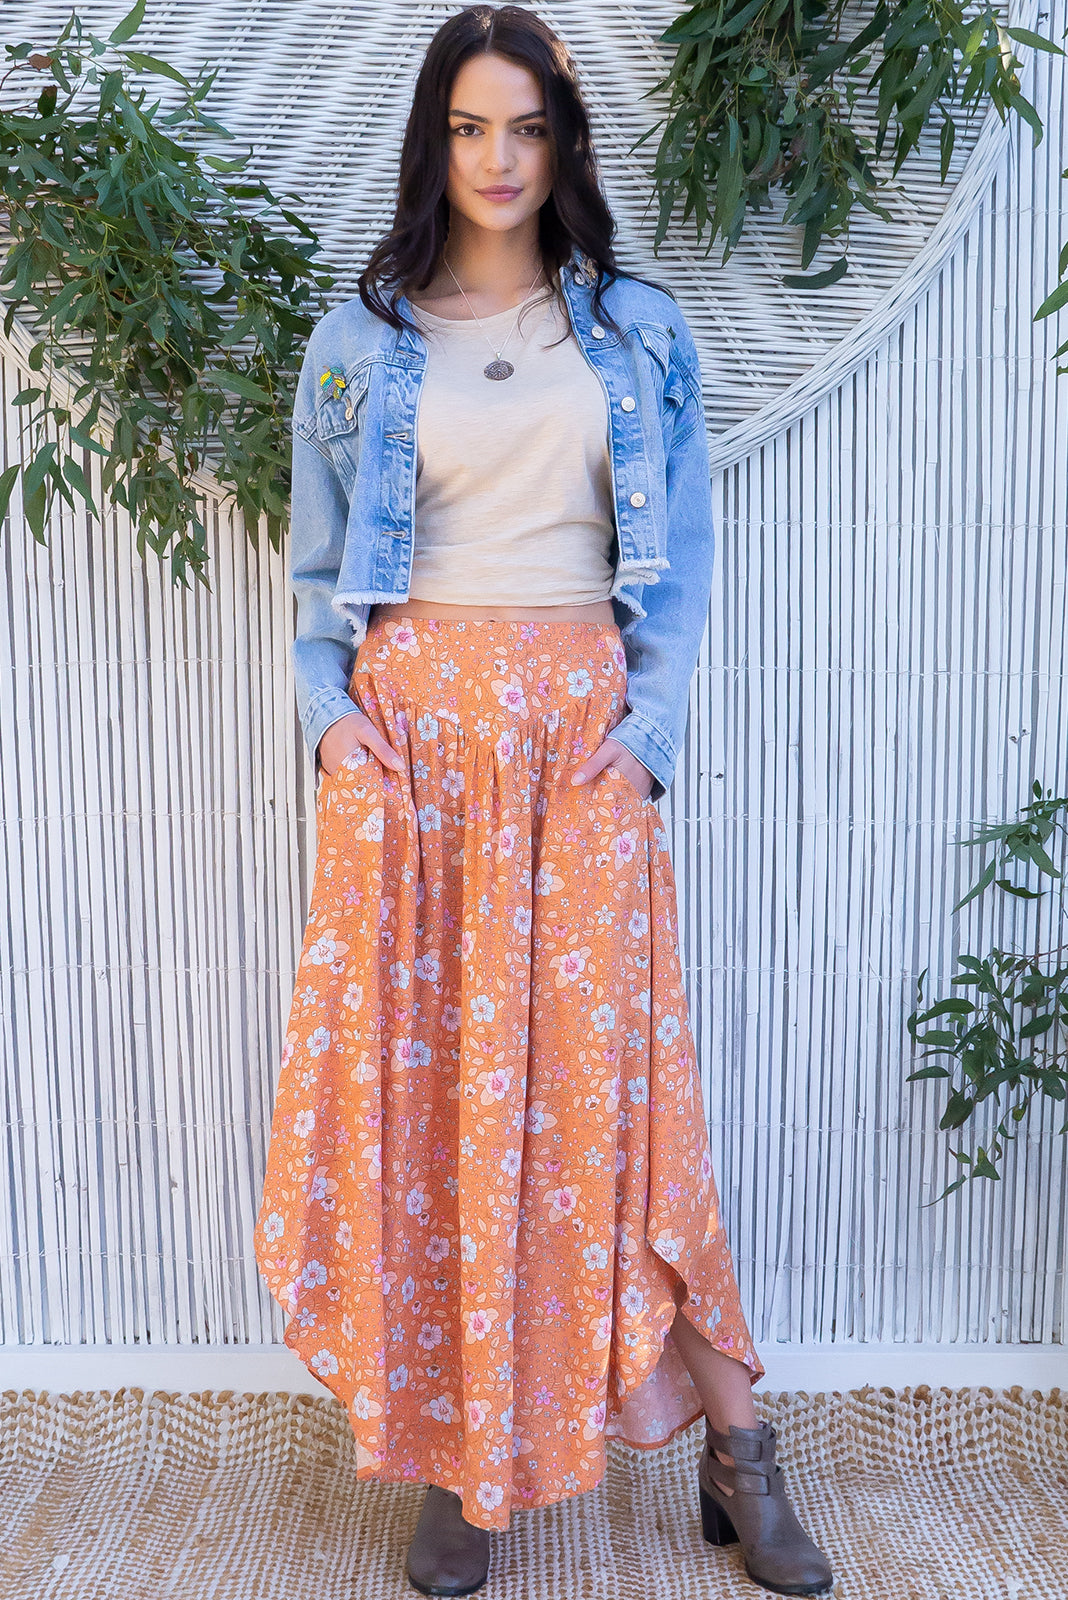 Sails Rust & Roses Maxi Skirt, bohemian vintage inspired style, floral print, v-panelled waist band, side pockets.